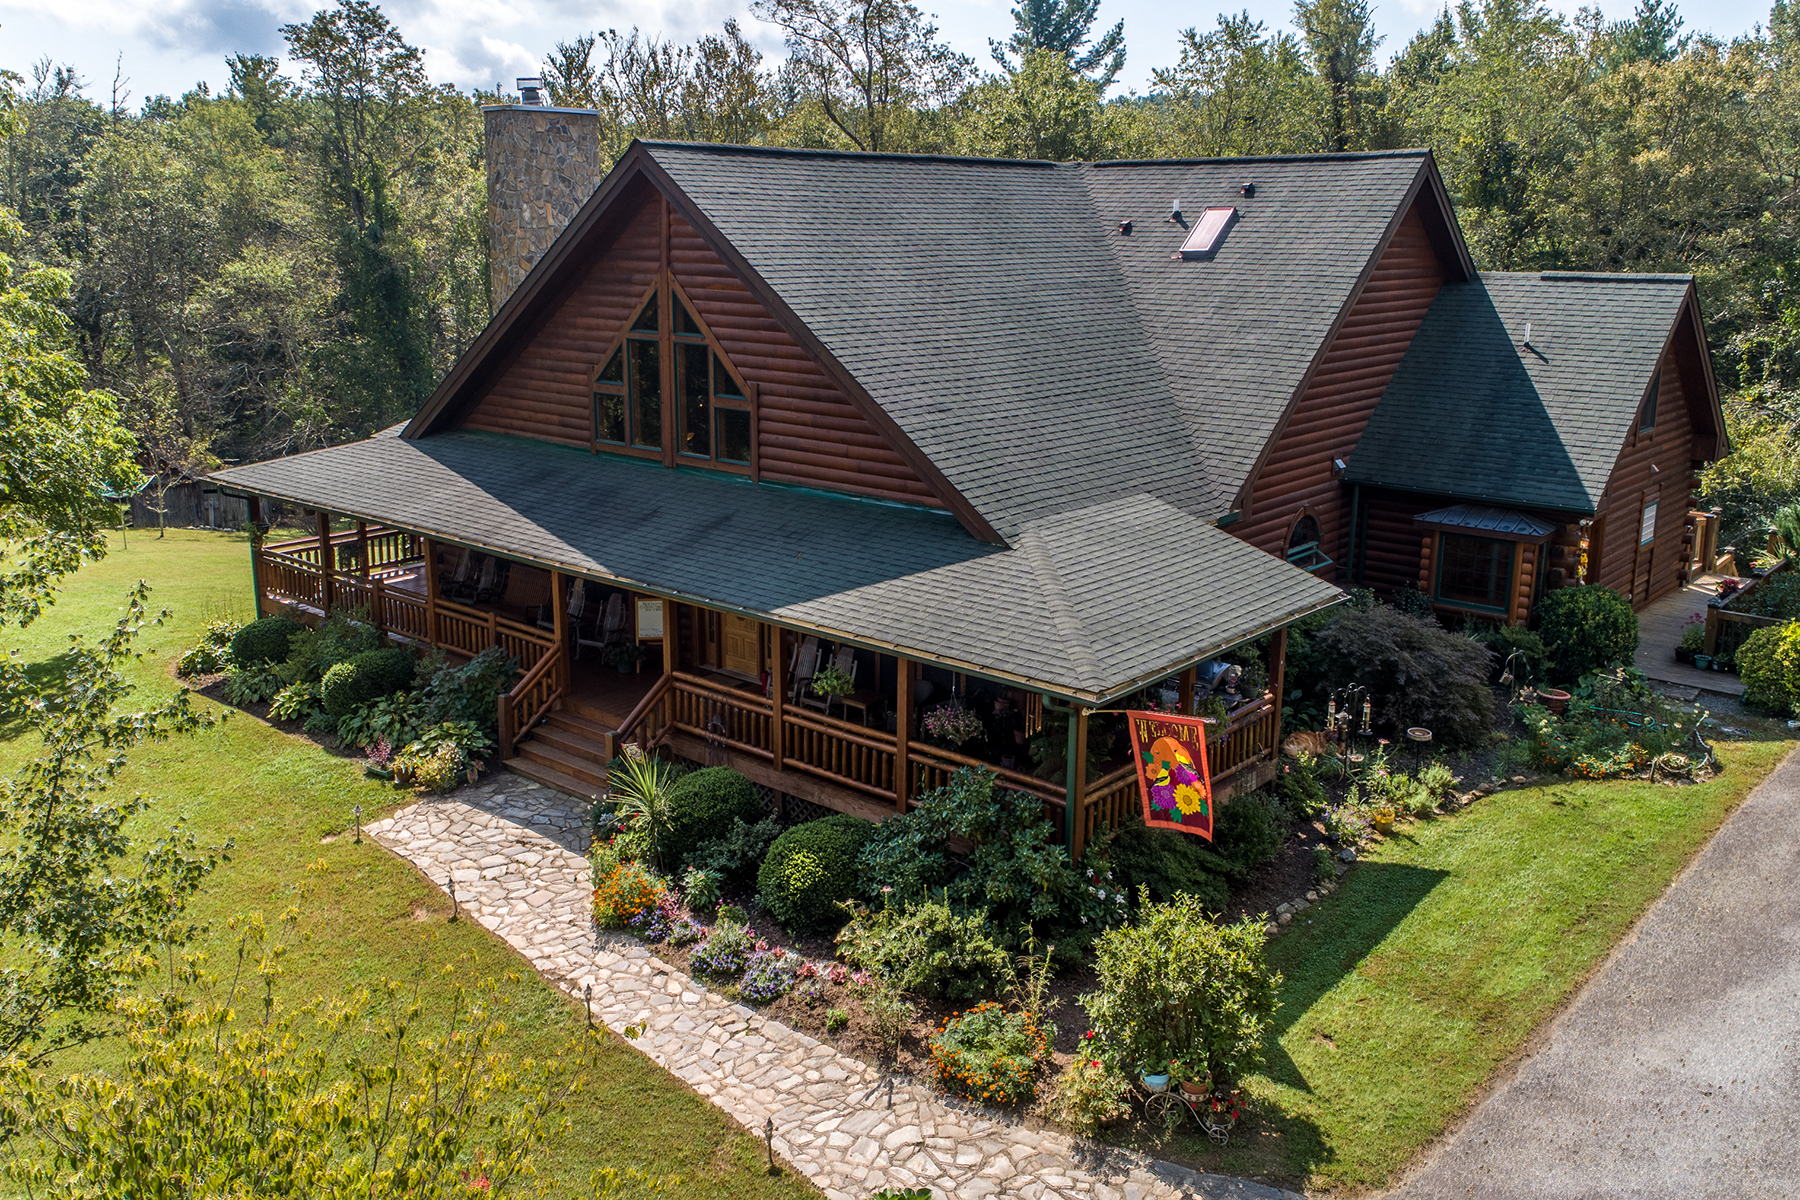 Single Family Homes for Active at GLADE VALLEY 330 Shaw Lane Glade Valley, North Carolina 28627 United States